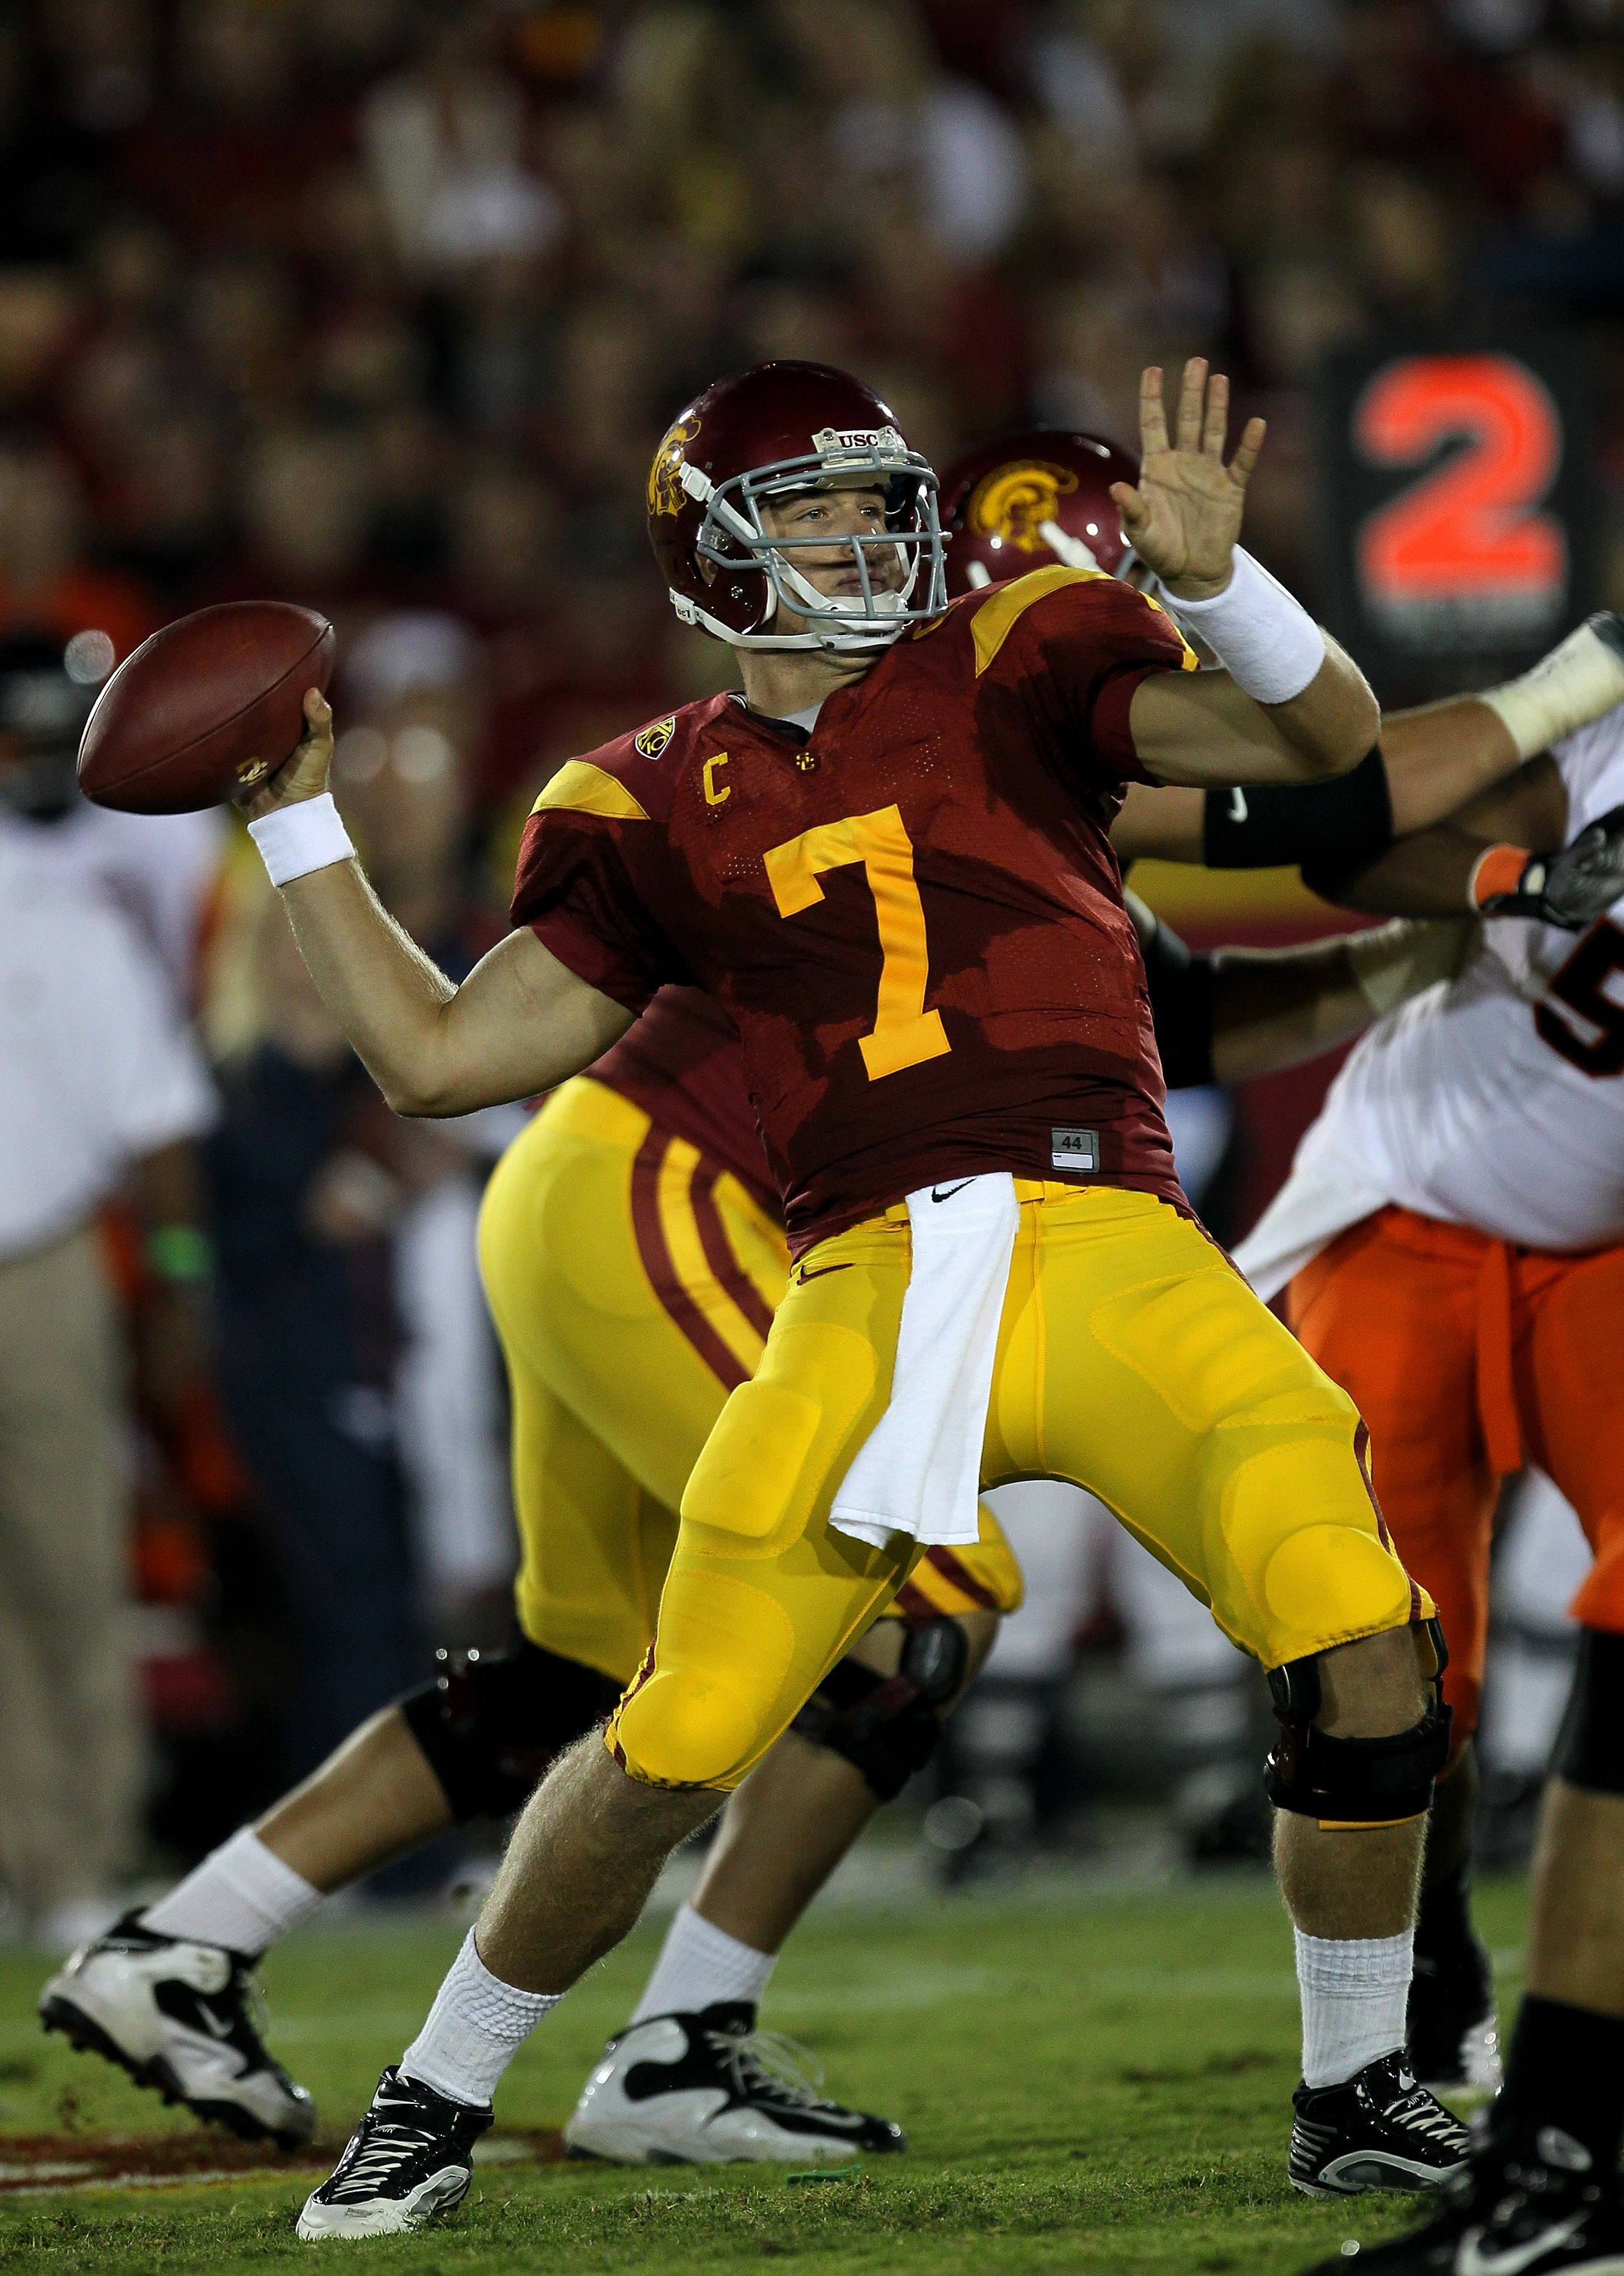 LOS ANGELES, CA - SEPTEMBER 11:  Quarterback Matt Barkley #7 of the USC Trojans throws a pass against the Virginia Cavaliers at Los Angeles Memorial Coliseum on September 11, 2010 in Los Angeles, California. USC won 17-14.   (Photo by Stephen Dunn/Getty I